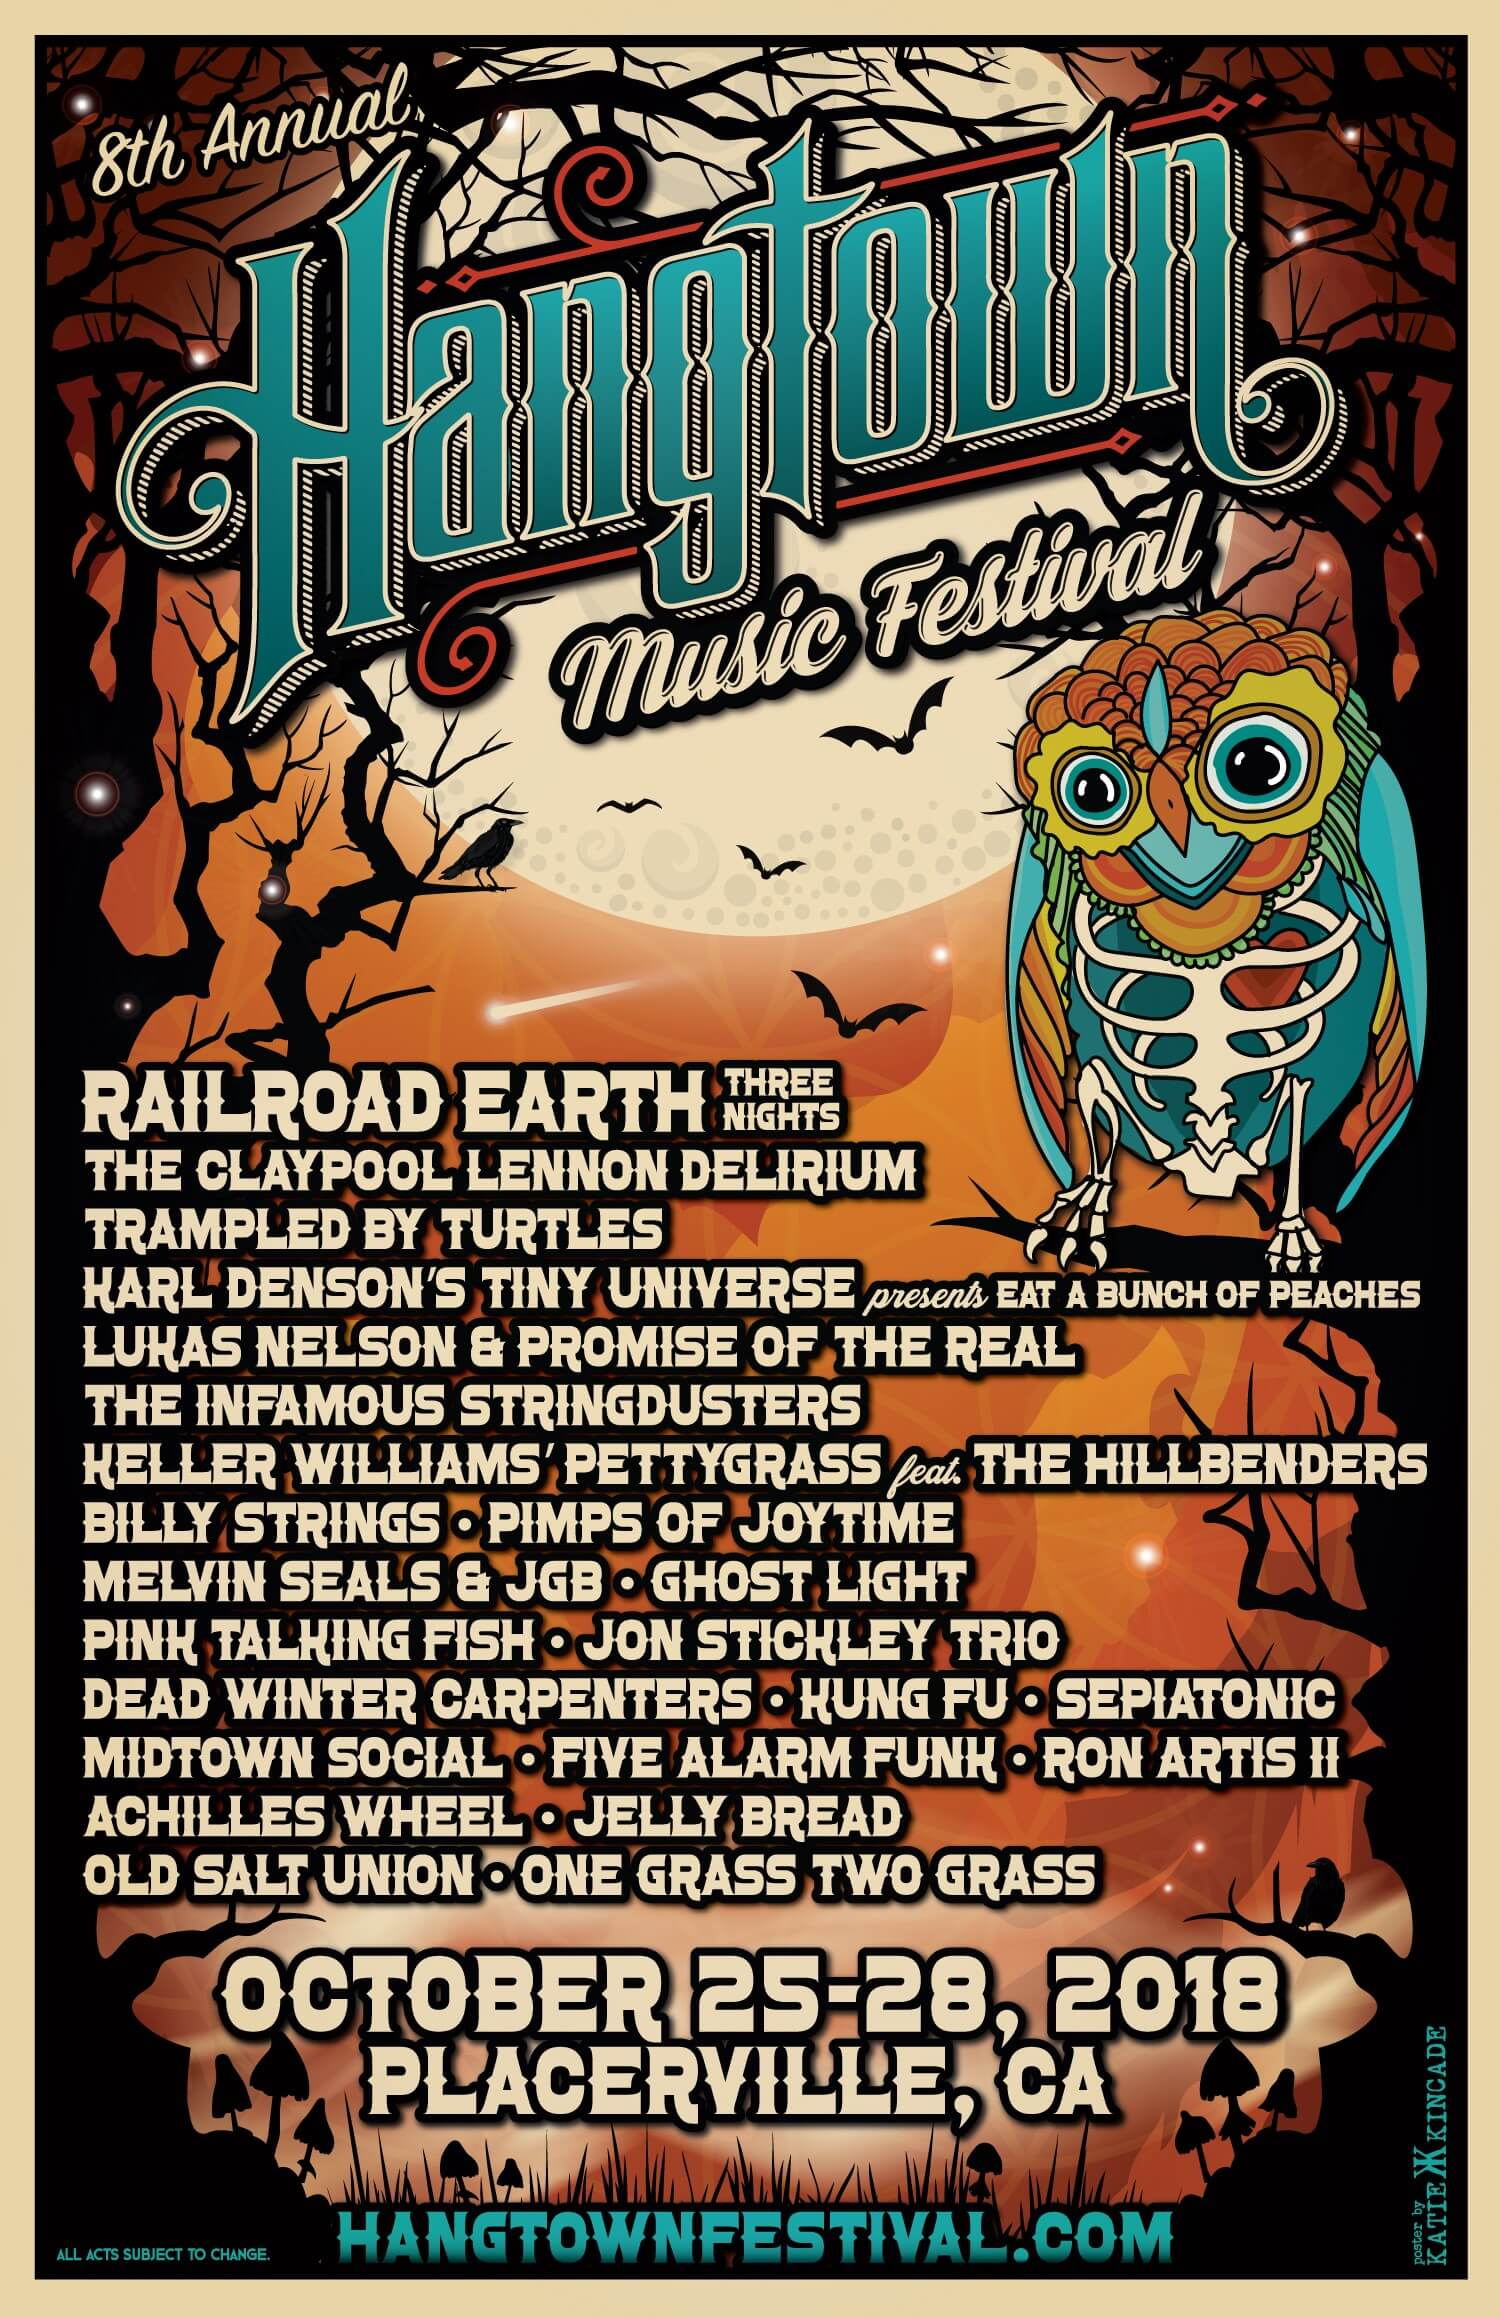 midtown social, hangtown, hang town music festival, railroad earth, placerville, music, 2018